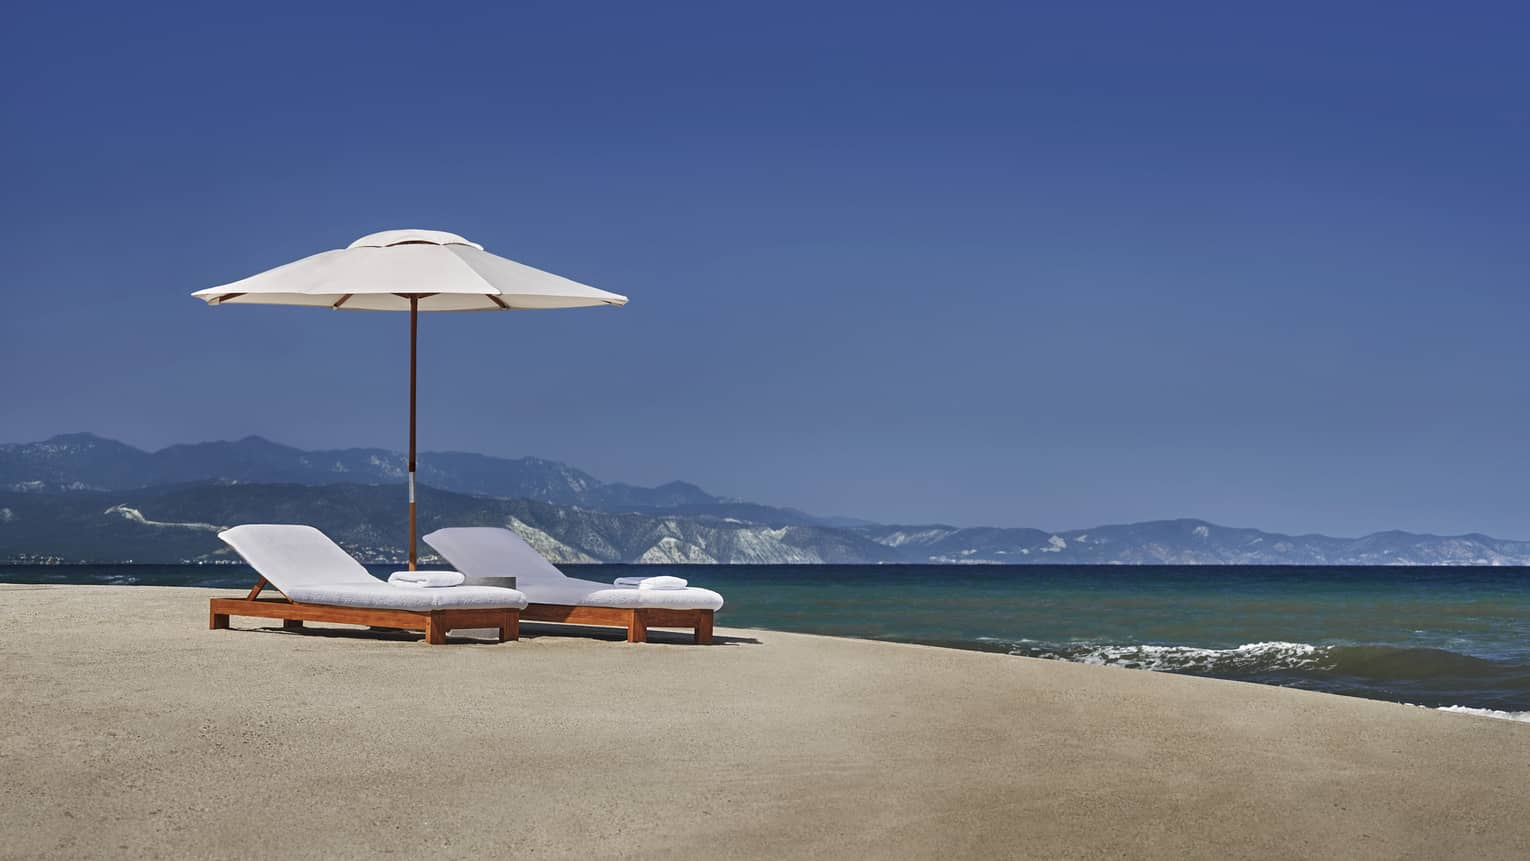 White patio umbrella, lounge chairs on sand beach